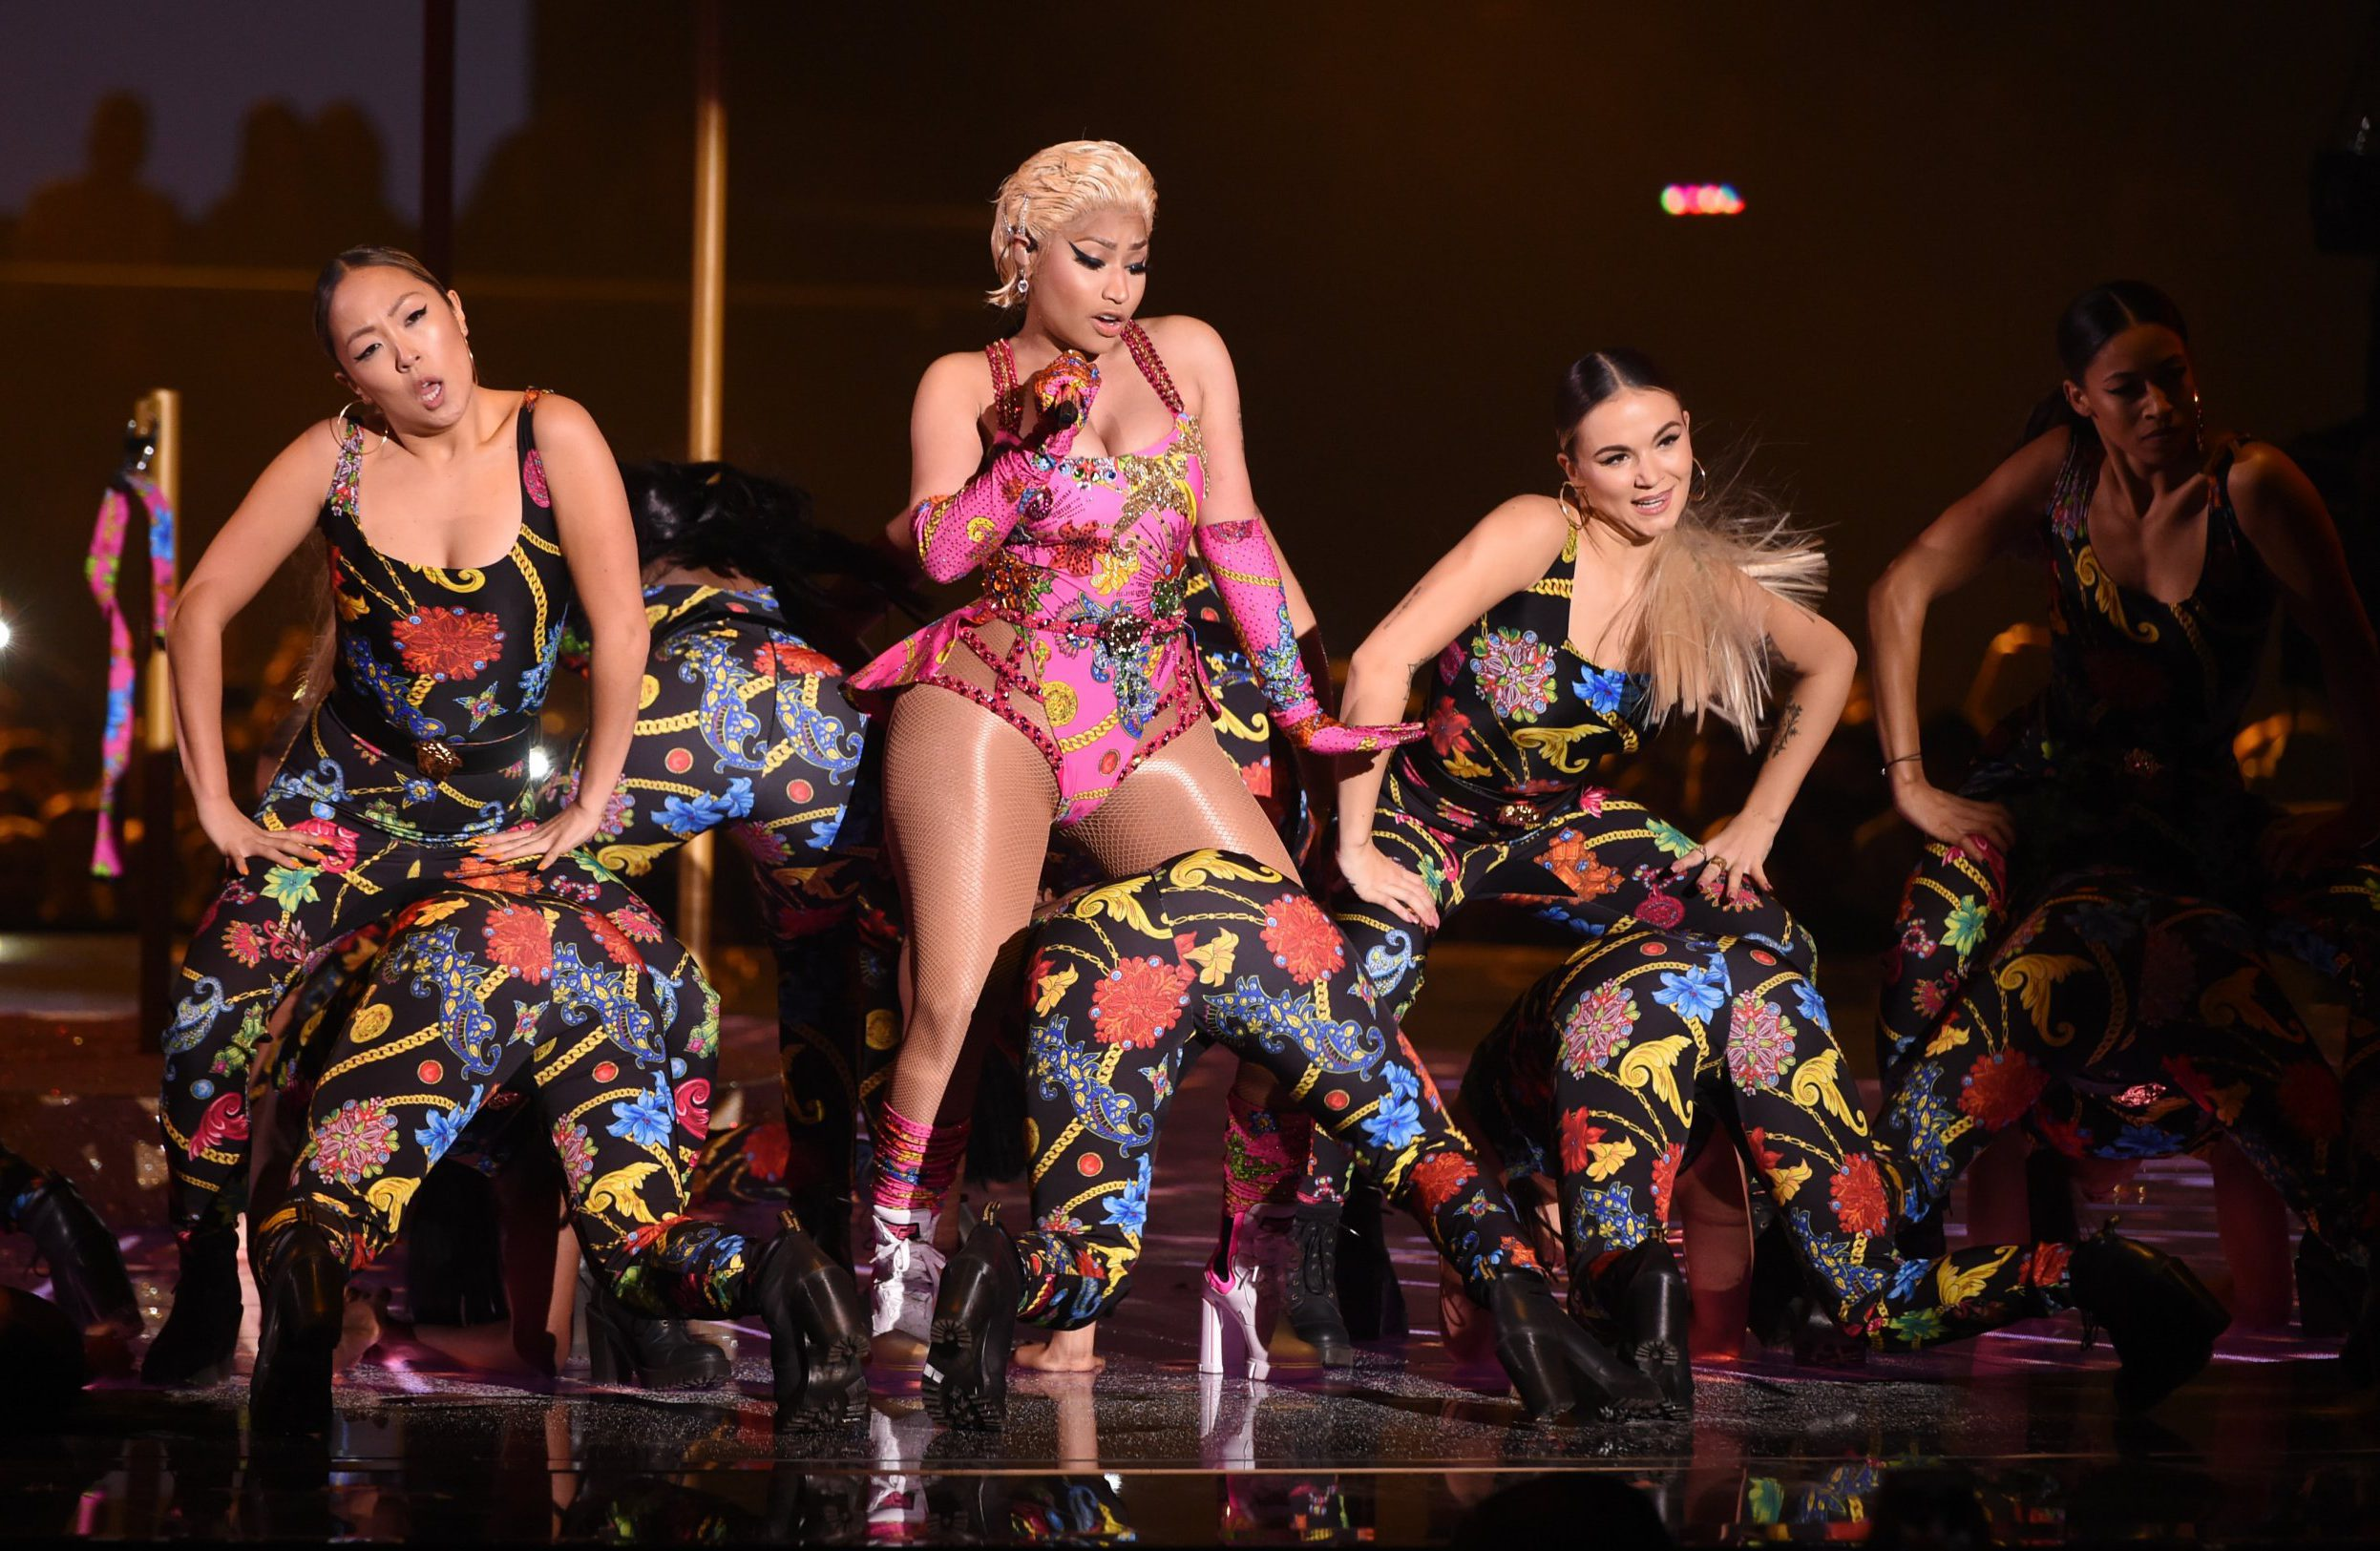 BILBAO, SPAIN - NOVEMBER 04: Nicki Minaj performs on stage during the MTV EMAs 2018 at Bilbao Exhibition Centre on November 4, 2018 in Bilbao, Spain. (Photo by Stuart C. Wilson/Getty Images for MTV)